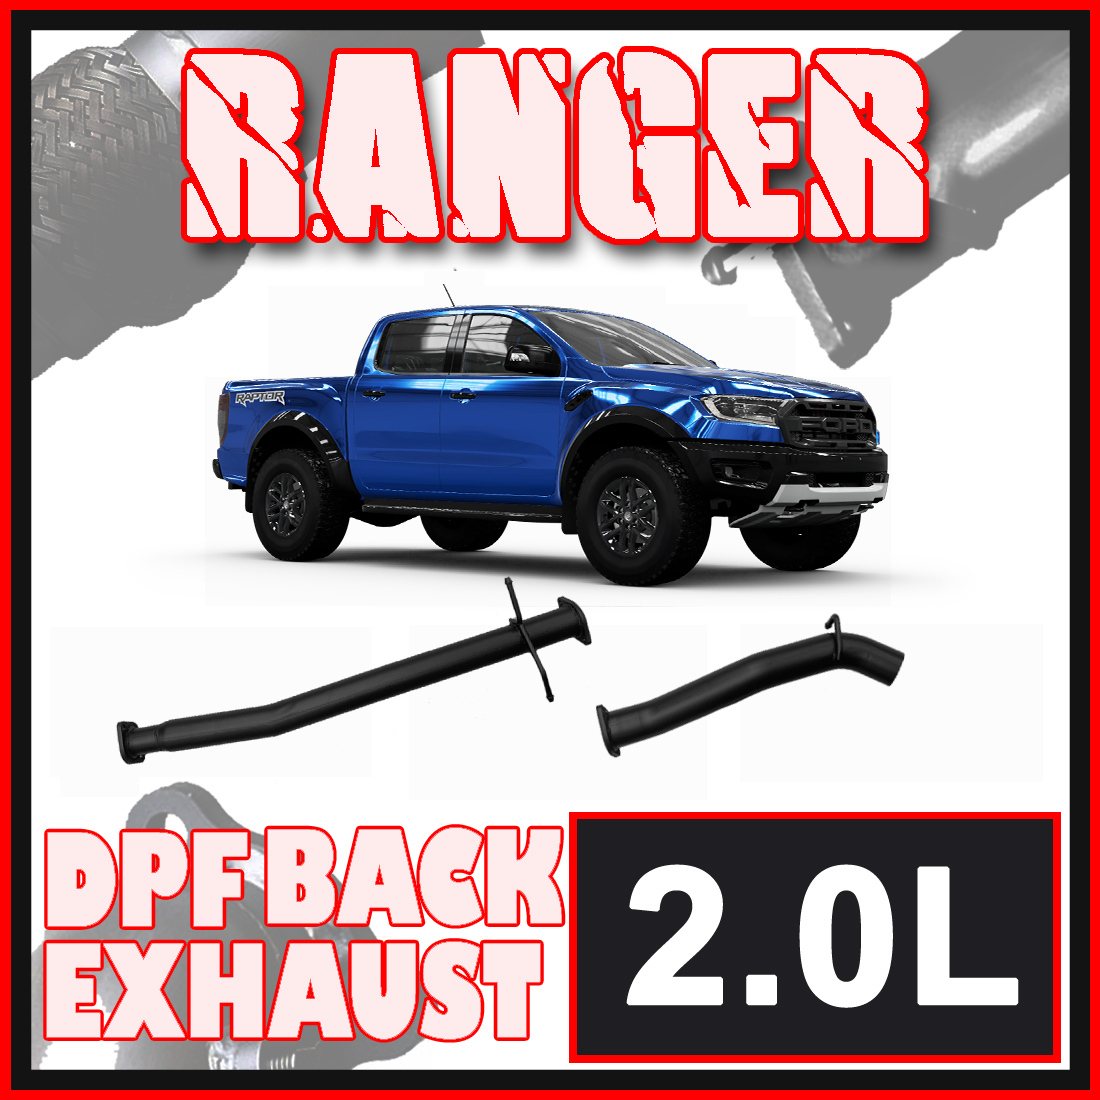 Ford Ranger Raptor 2.0L DPF Model Ignite Exhaust image